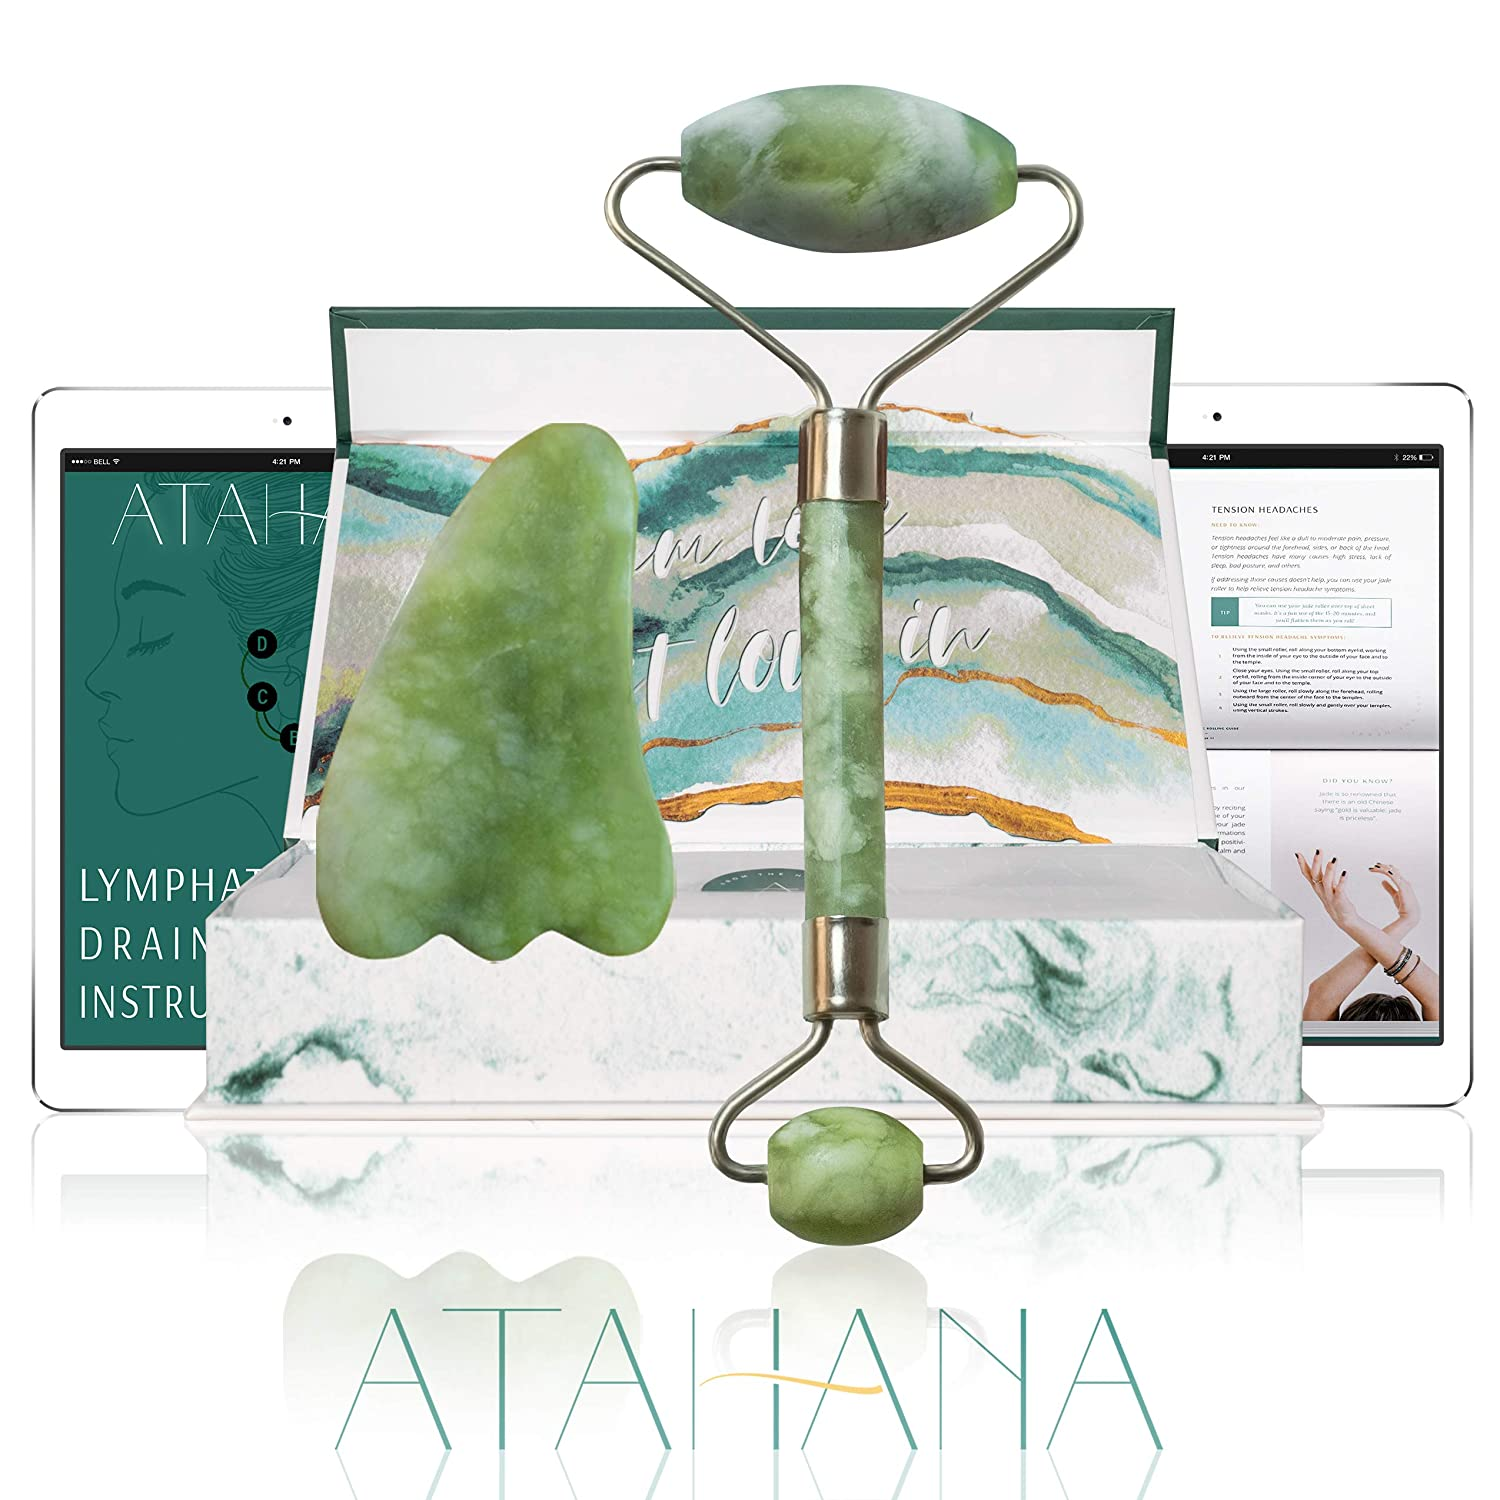 Real Jade Roller & Gua Sha - 100% Real Jade Facial Roller - with Video Tutorial and eBook - Natural Skin Care Tool for Lymphatic Drainage, Face, Neck and Eyes - Wrinkles, Puffiness and Dark Circles